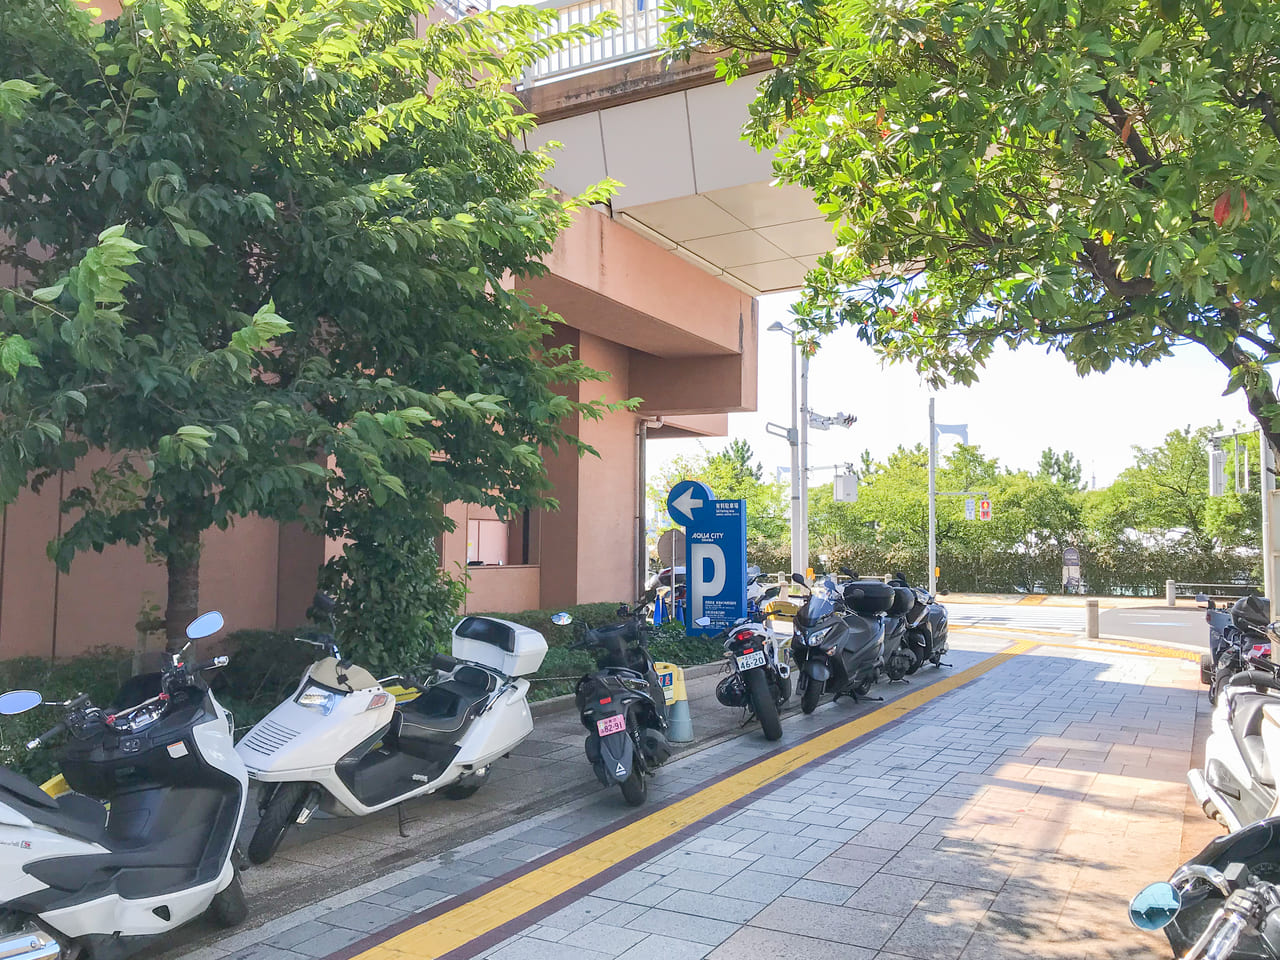 /1261-aqua-city-1f-motorcycle-bicycle-parking-lot-appearance